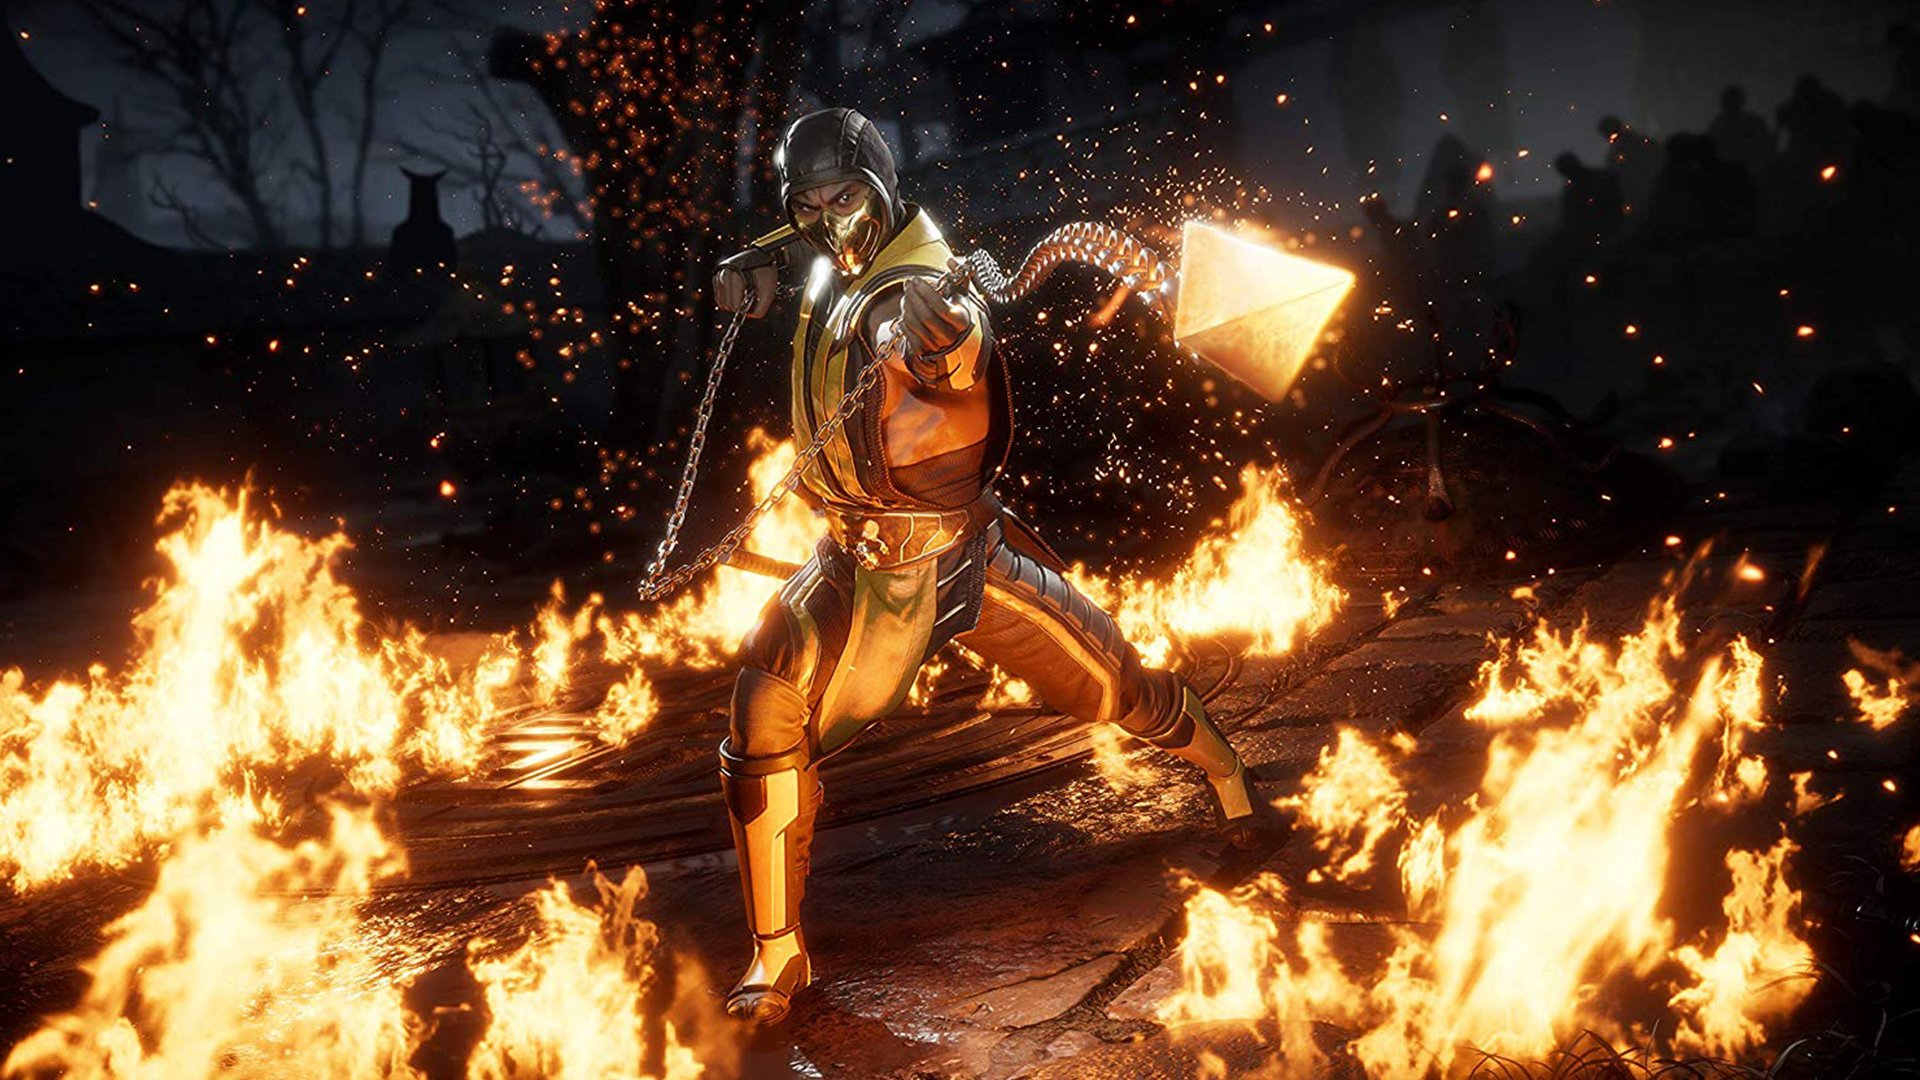 After downloading Mortal Kombat Mobile, you'll need to generate a code through Settings and Console Link, then input that code into Mortal Kombat 11 on Xbox One, PlayStation 4, or PC.